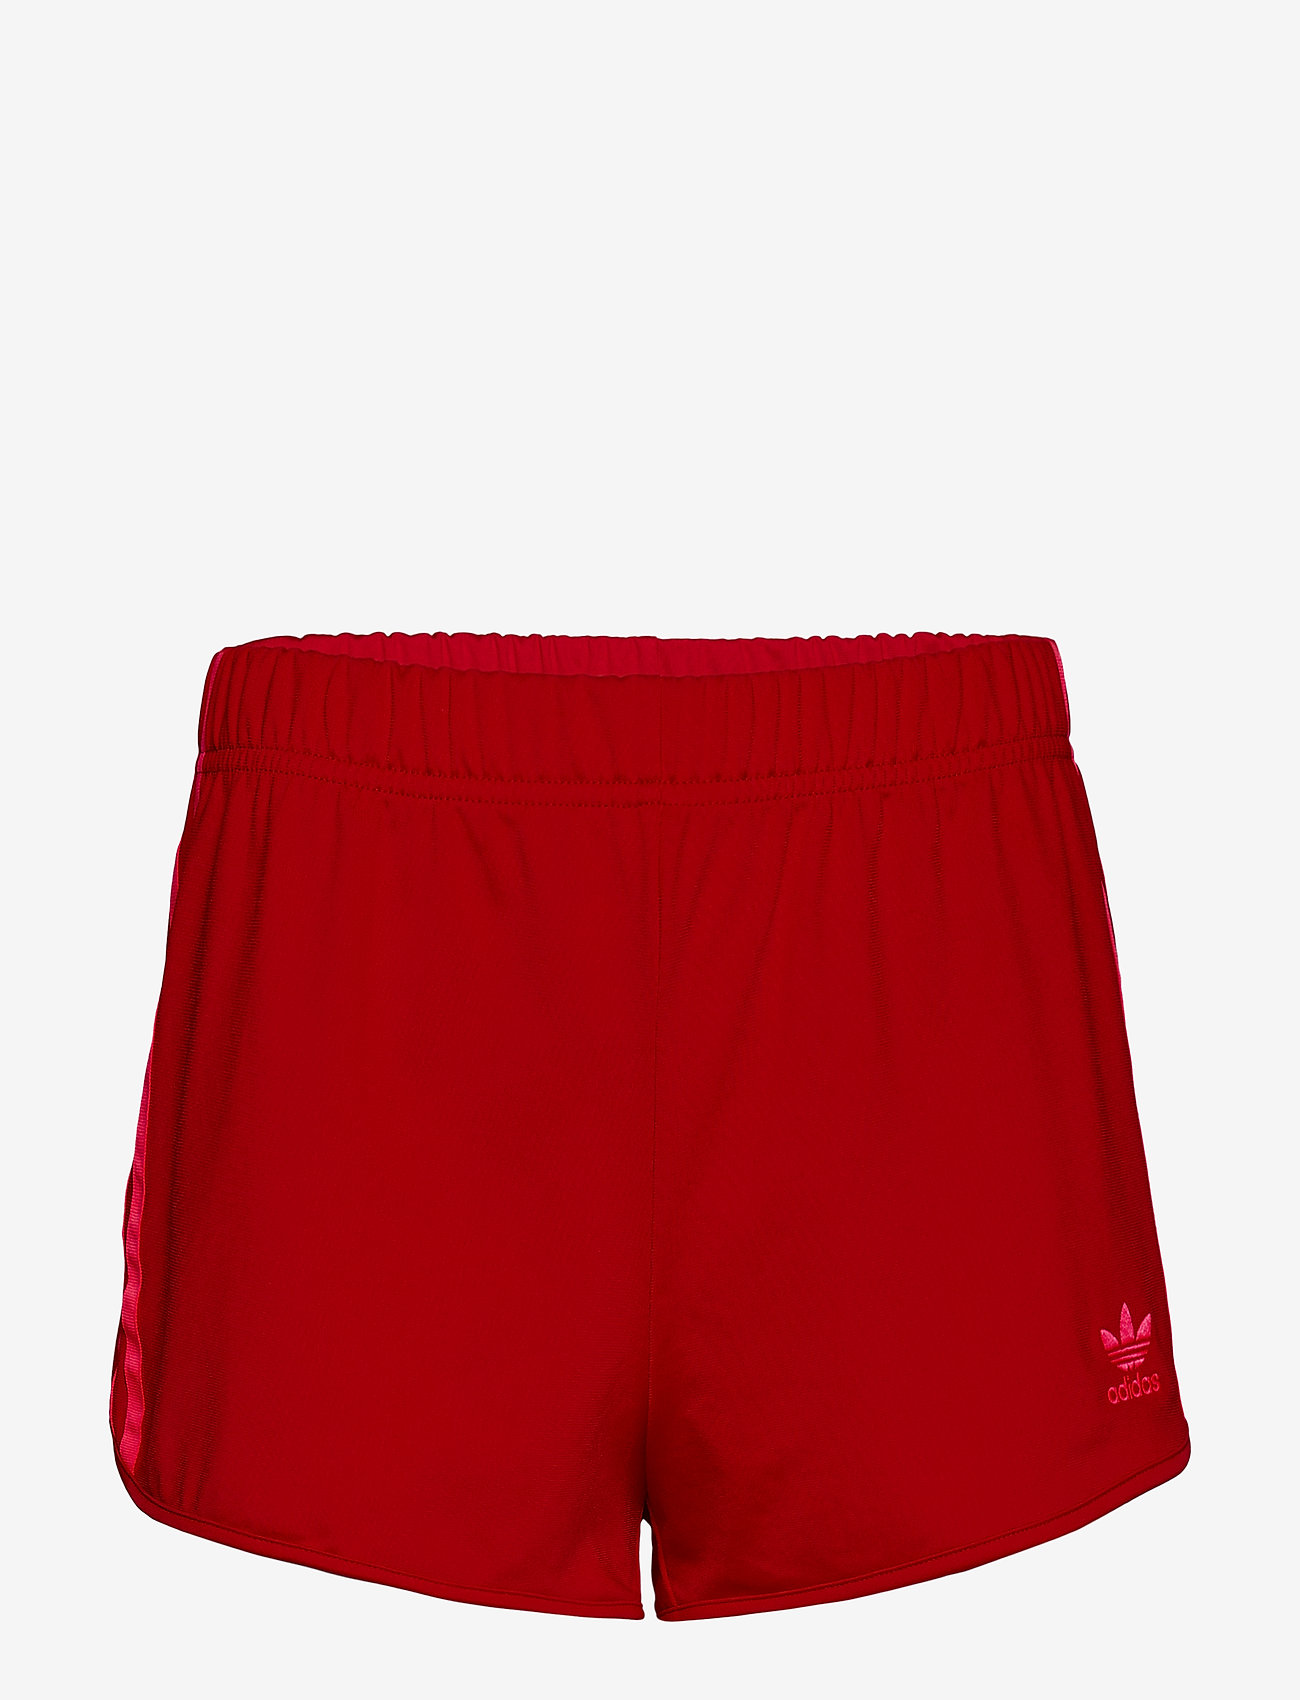 adidas Originals - 3 STR SHORT - training shorts - scarle - 1